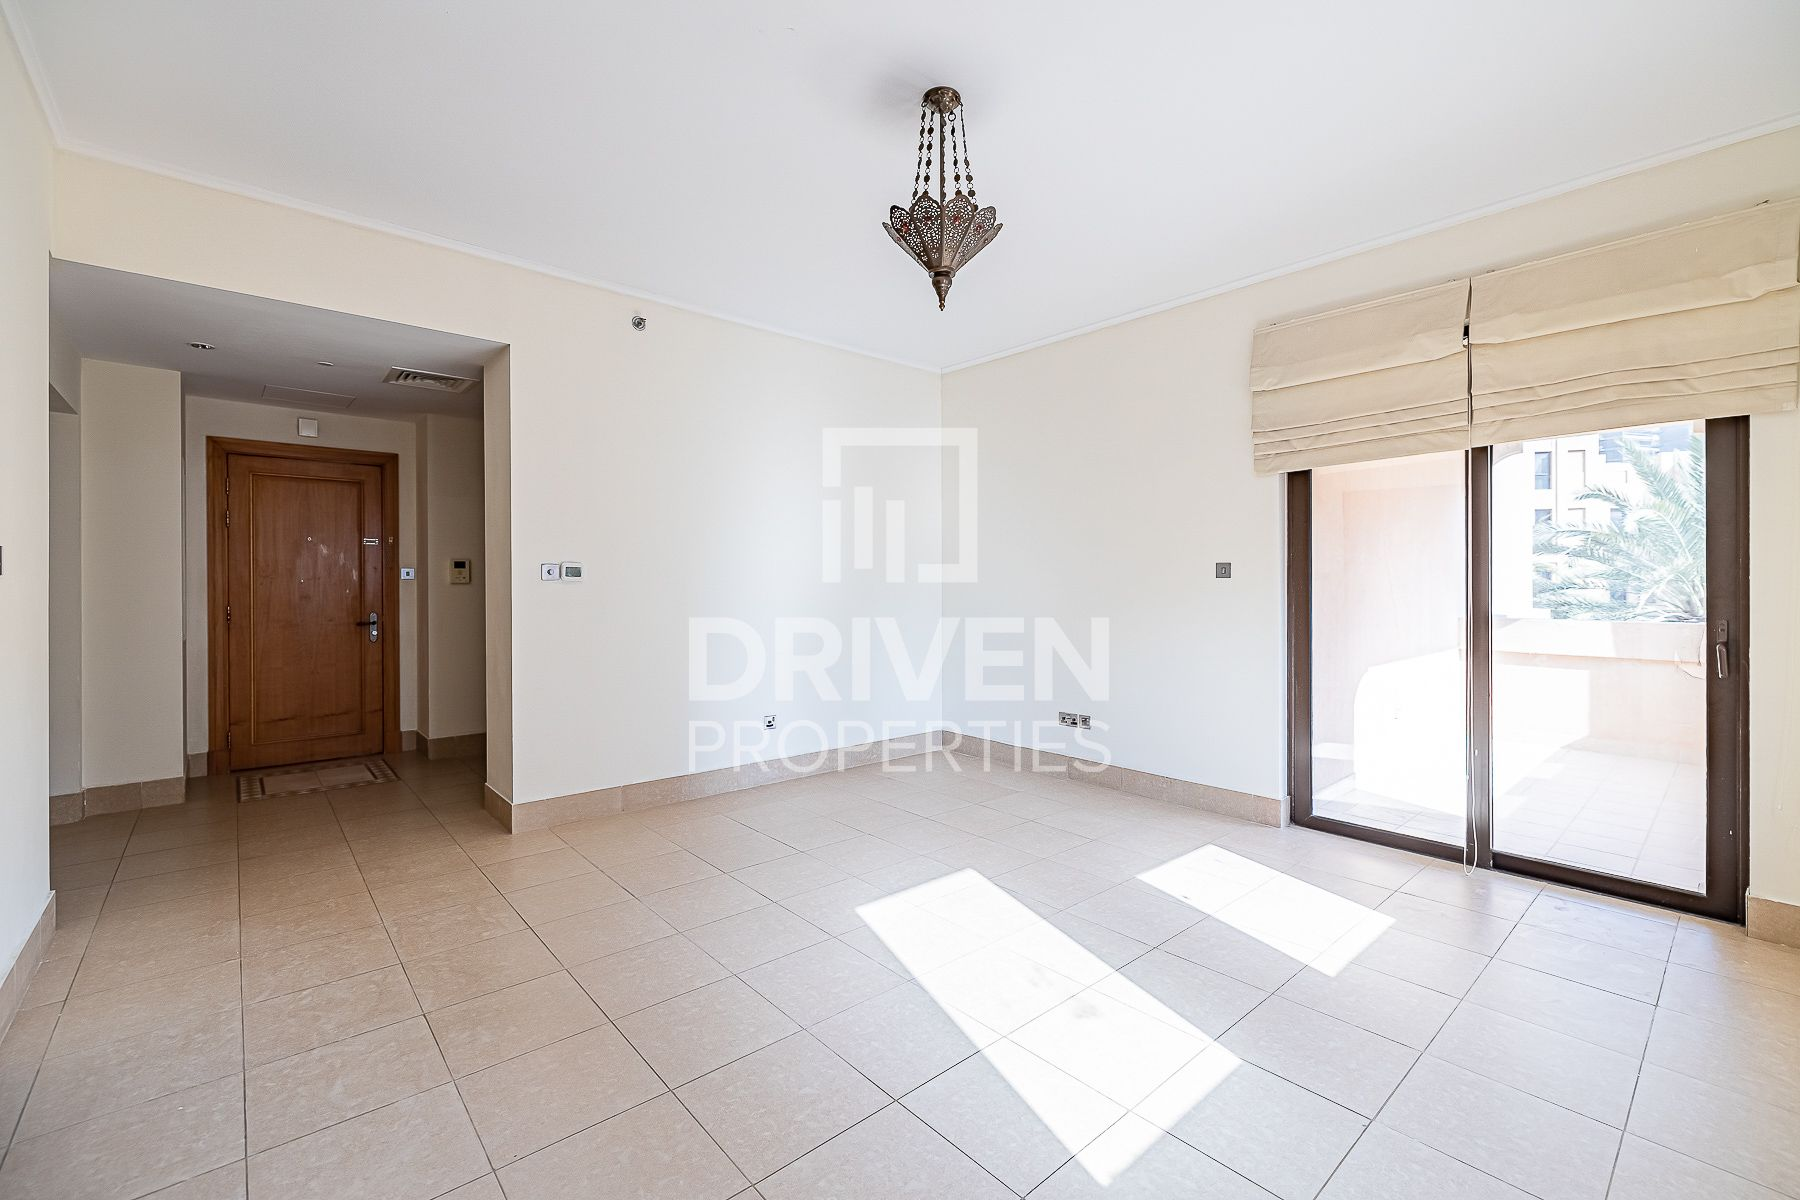 Well-maintained and Bright 2 Bedroom Apt